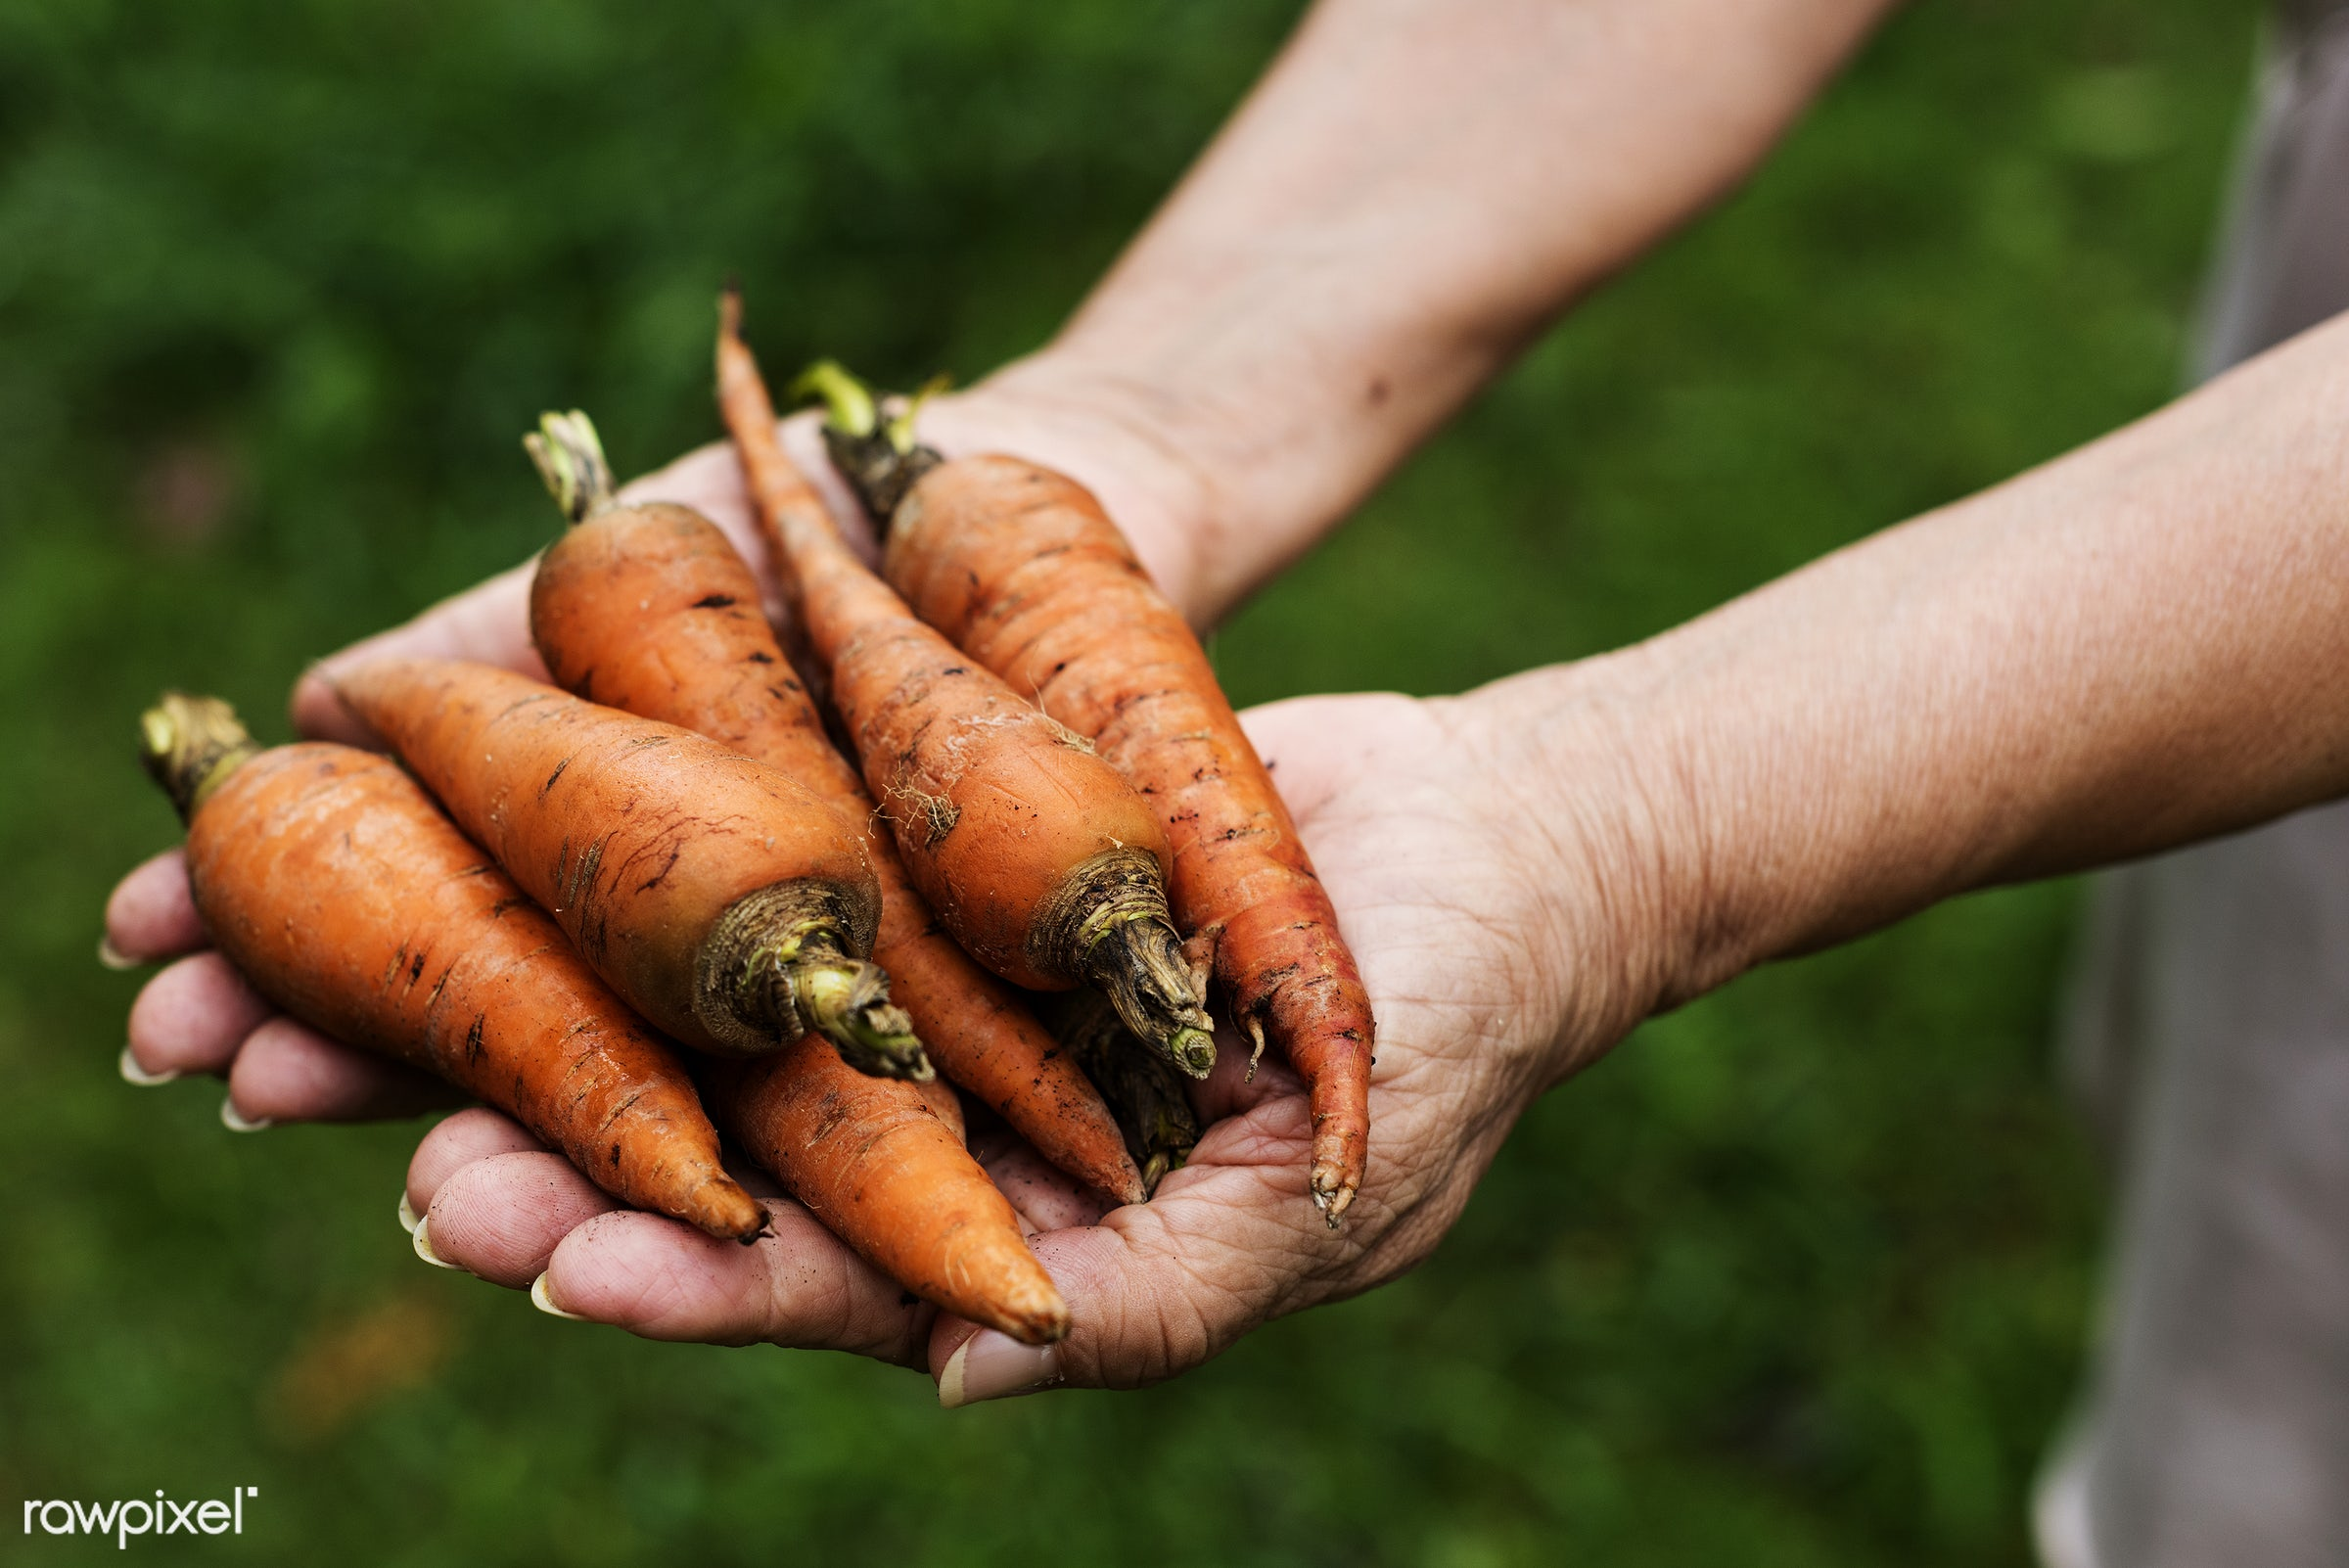 raw, carrot, holding, farm, nature, hands, fresh, ingredient, closeup, organic, food, healthy, harvest, produce